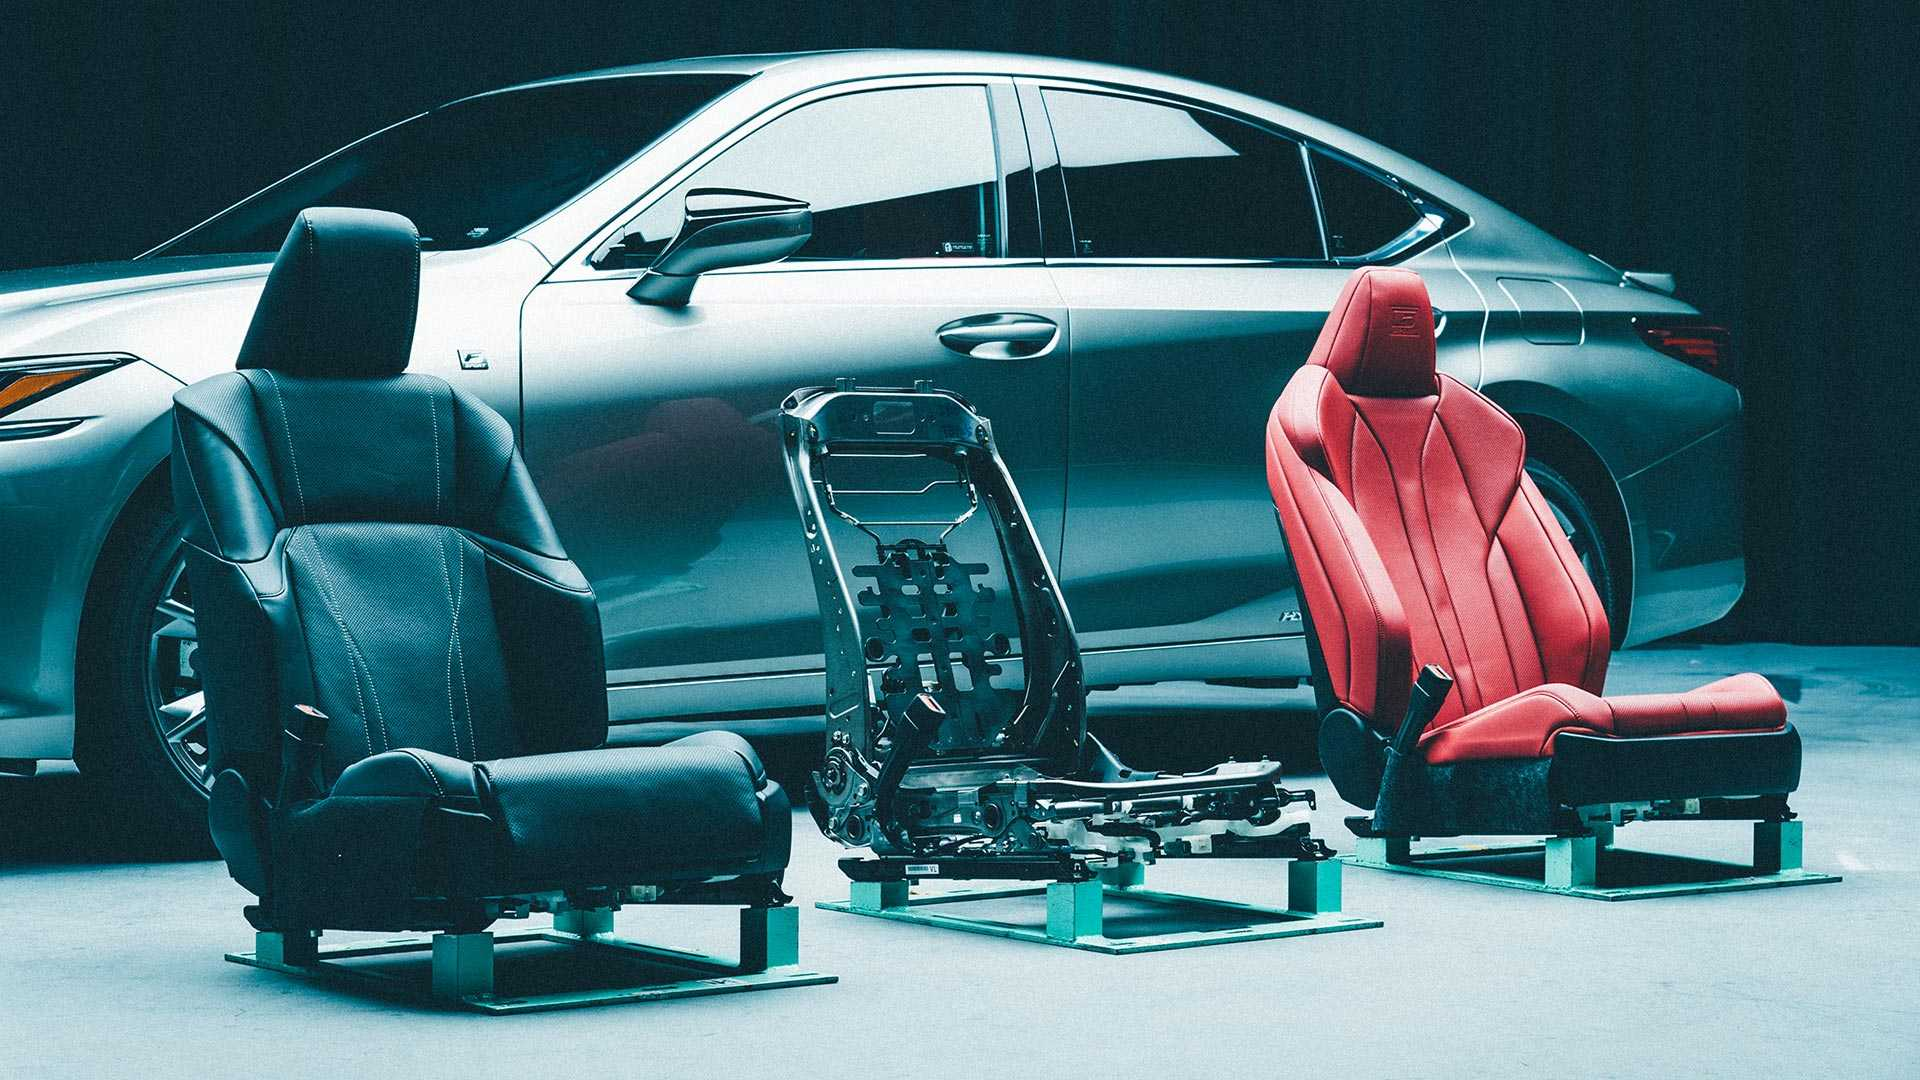 2019 Lexus Es Seats Are Engineered To Support Your Butt Better